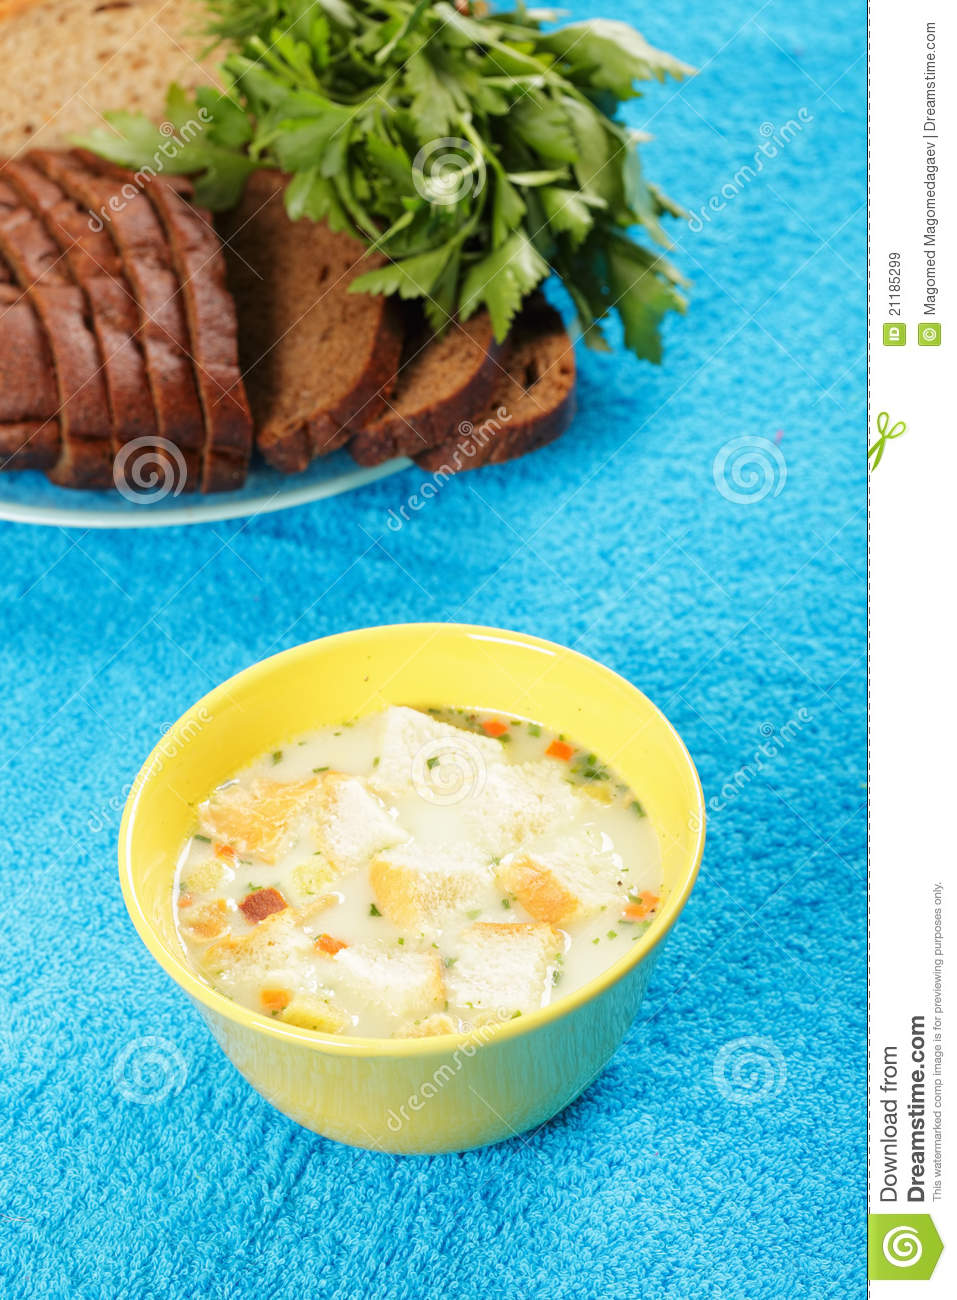 Cheese soup and bread with greens